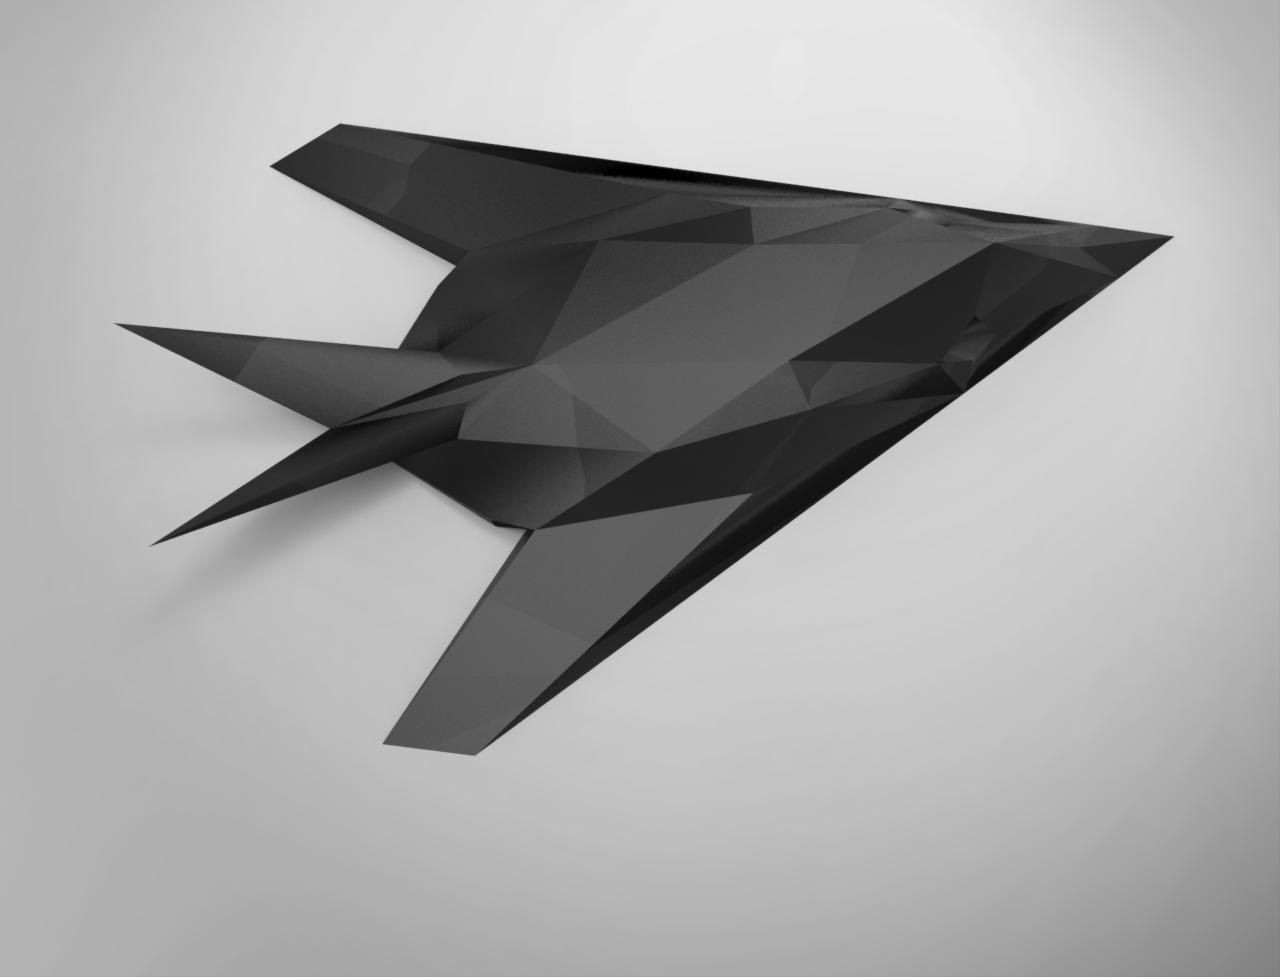 Printable Paper Craft Model Of F-117 Nighthawk Fighter Jet